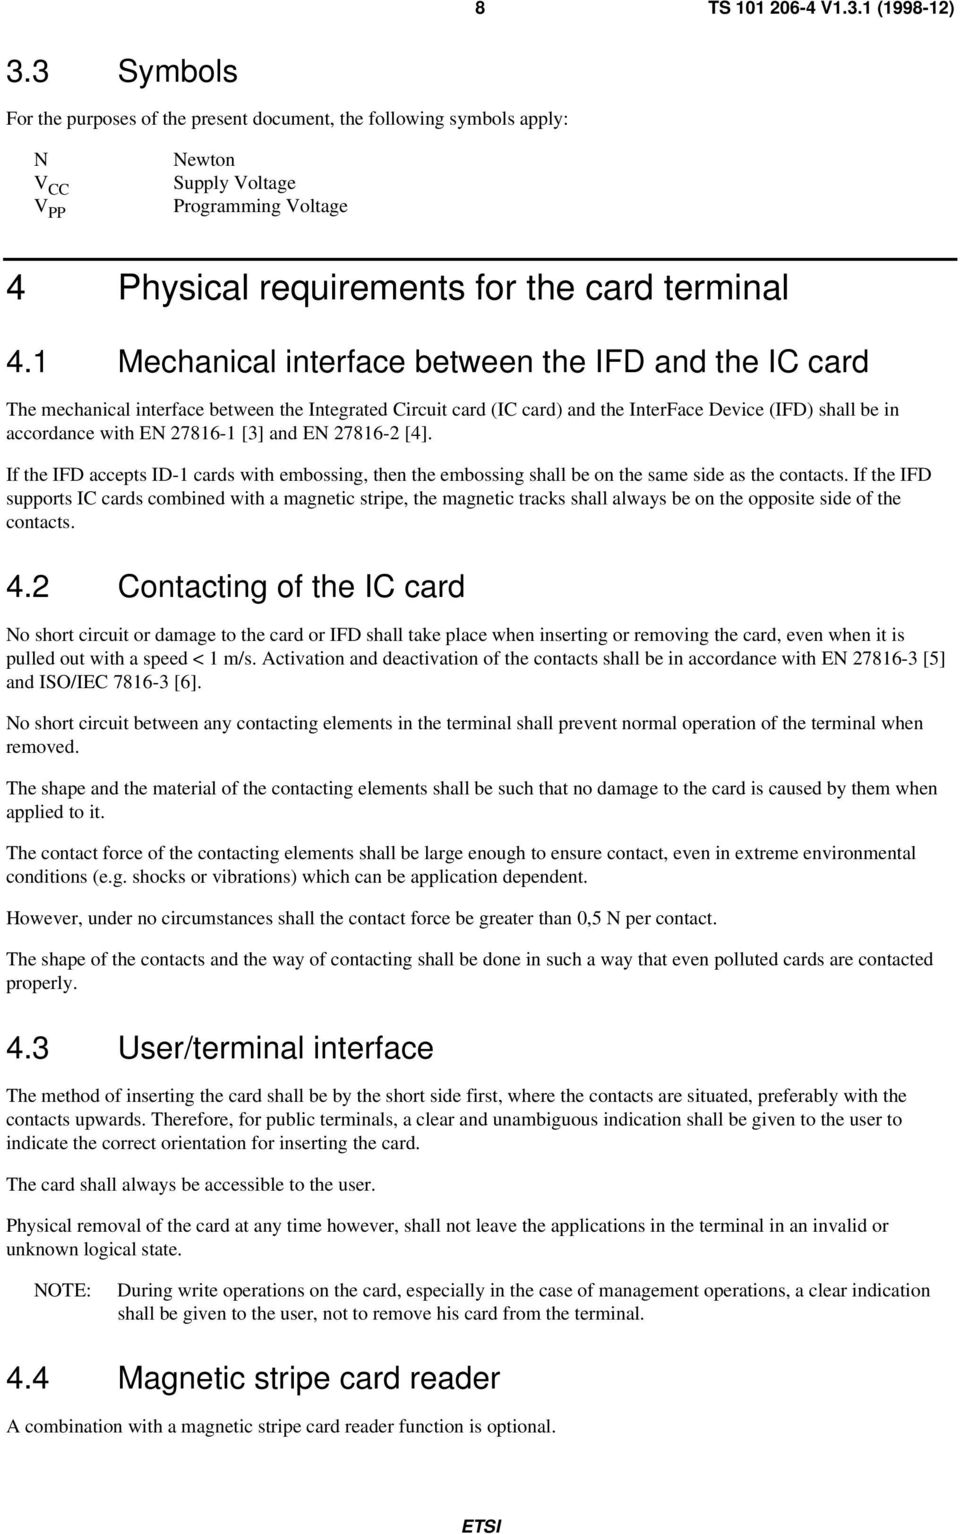 and EN 27816-2 [4]. If the IFD accepts ID-1 cards with embossing, then the embossing shall be on the same side as the contacts.